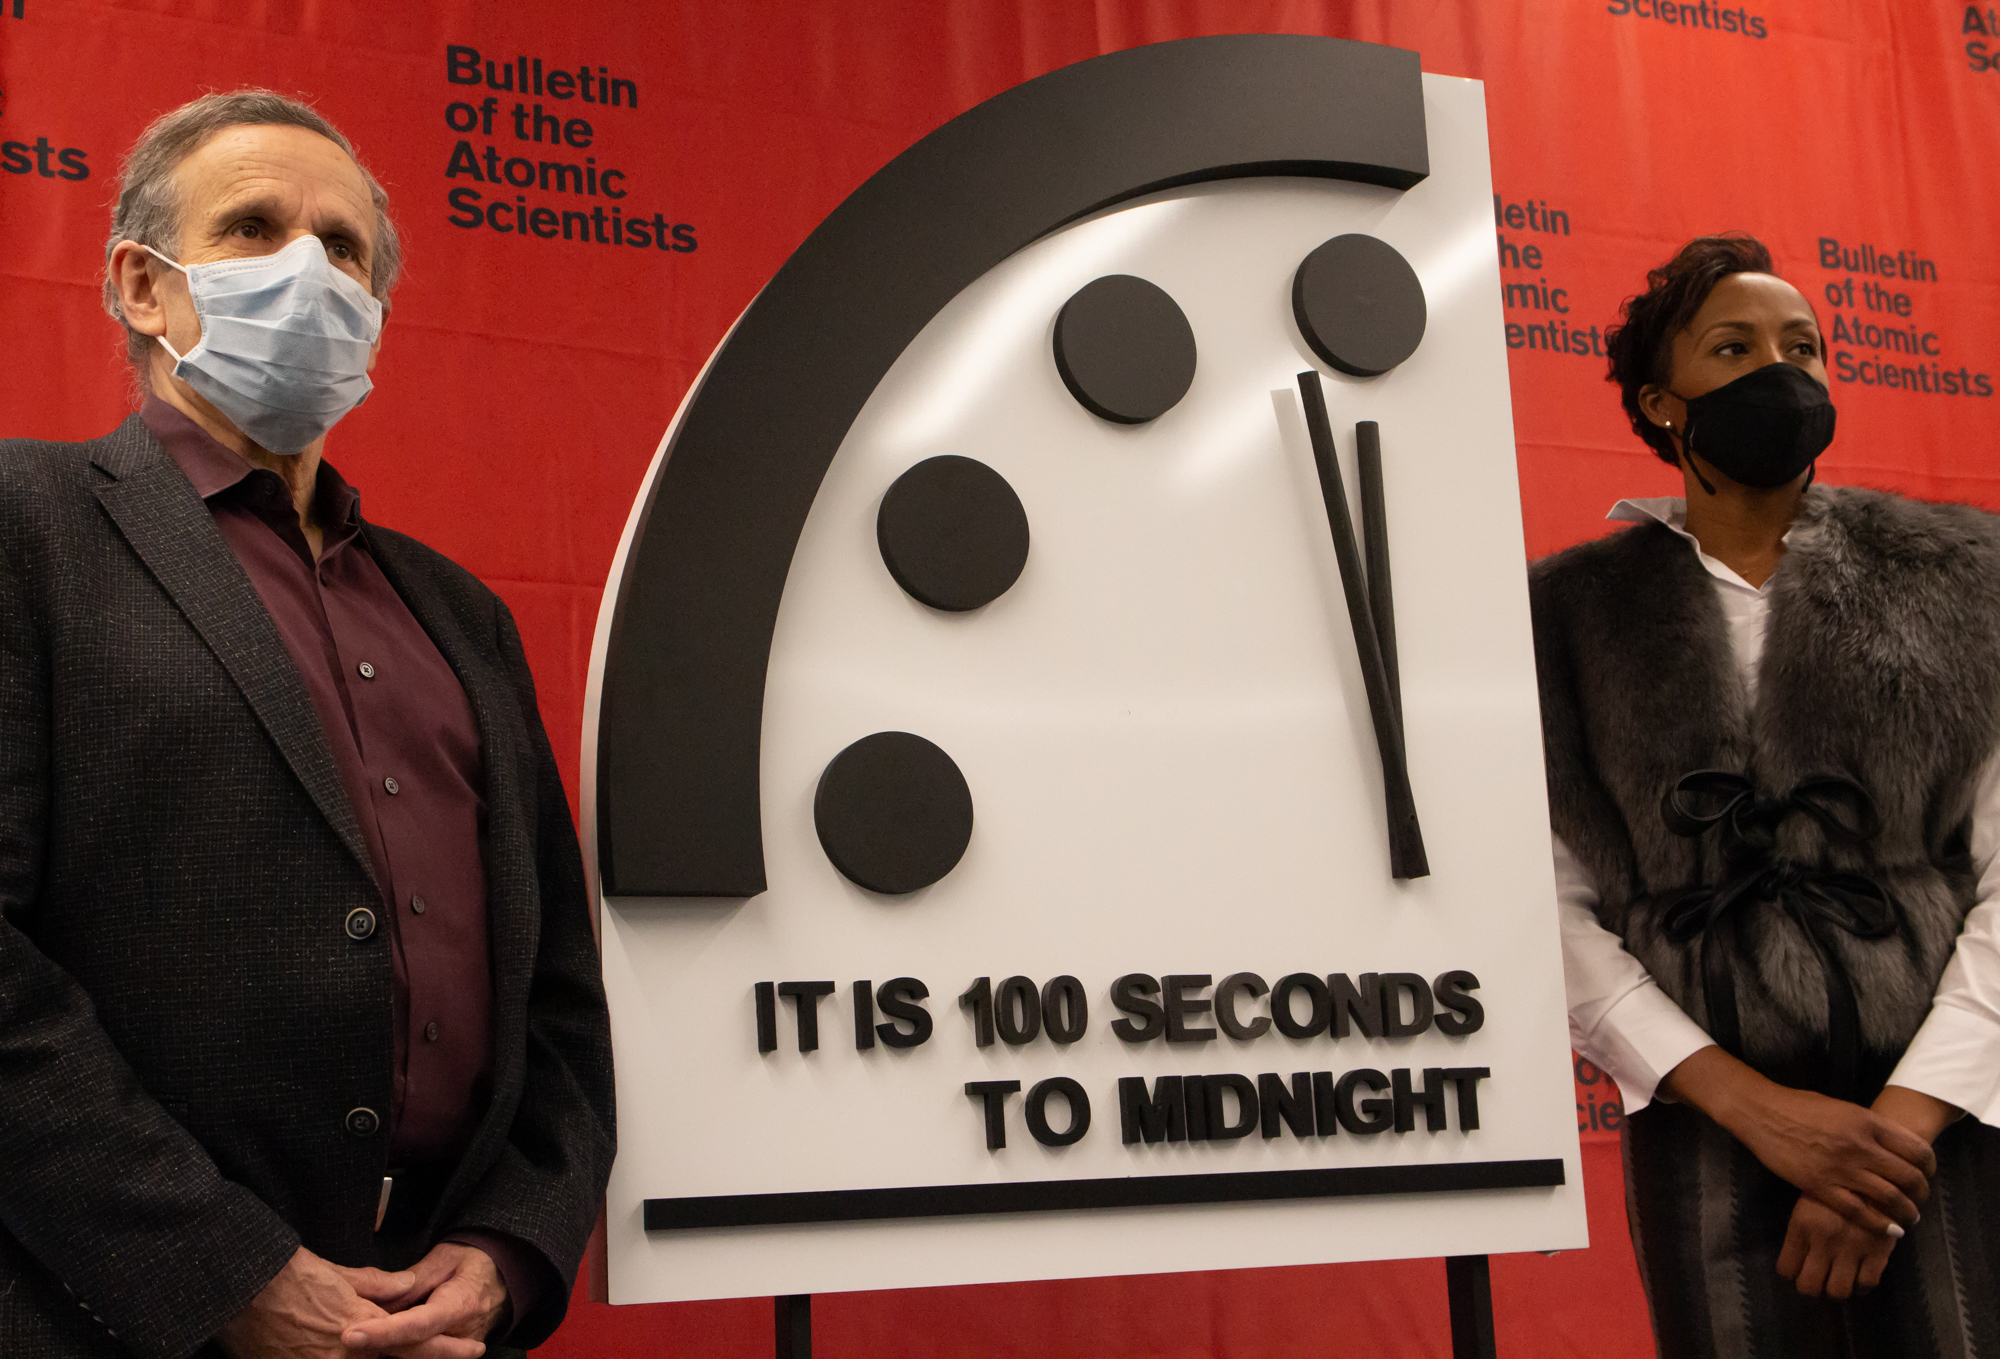 """Robert Rosner and Suzet McKinney stand in front of the Doomsday Clock, which reads """"It is 100 seconds to midnight."""""""